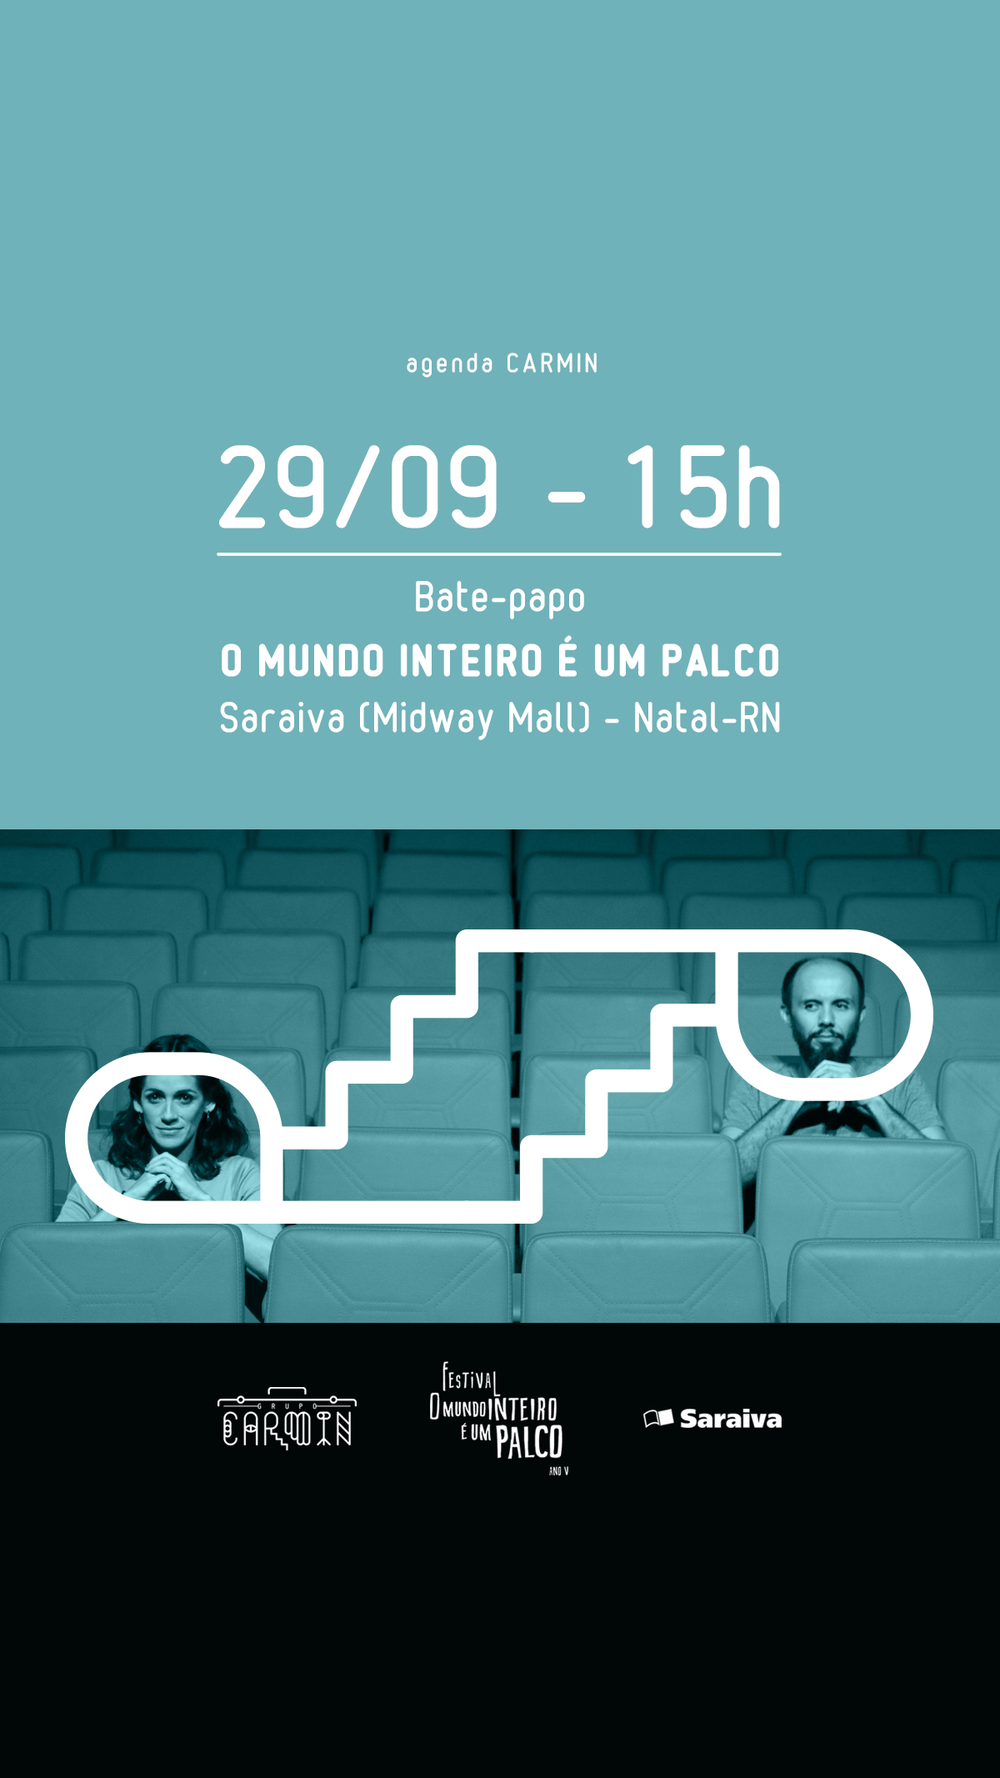 Bate-papo Festival - Stories (1).png